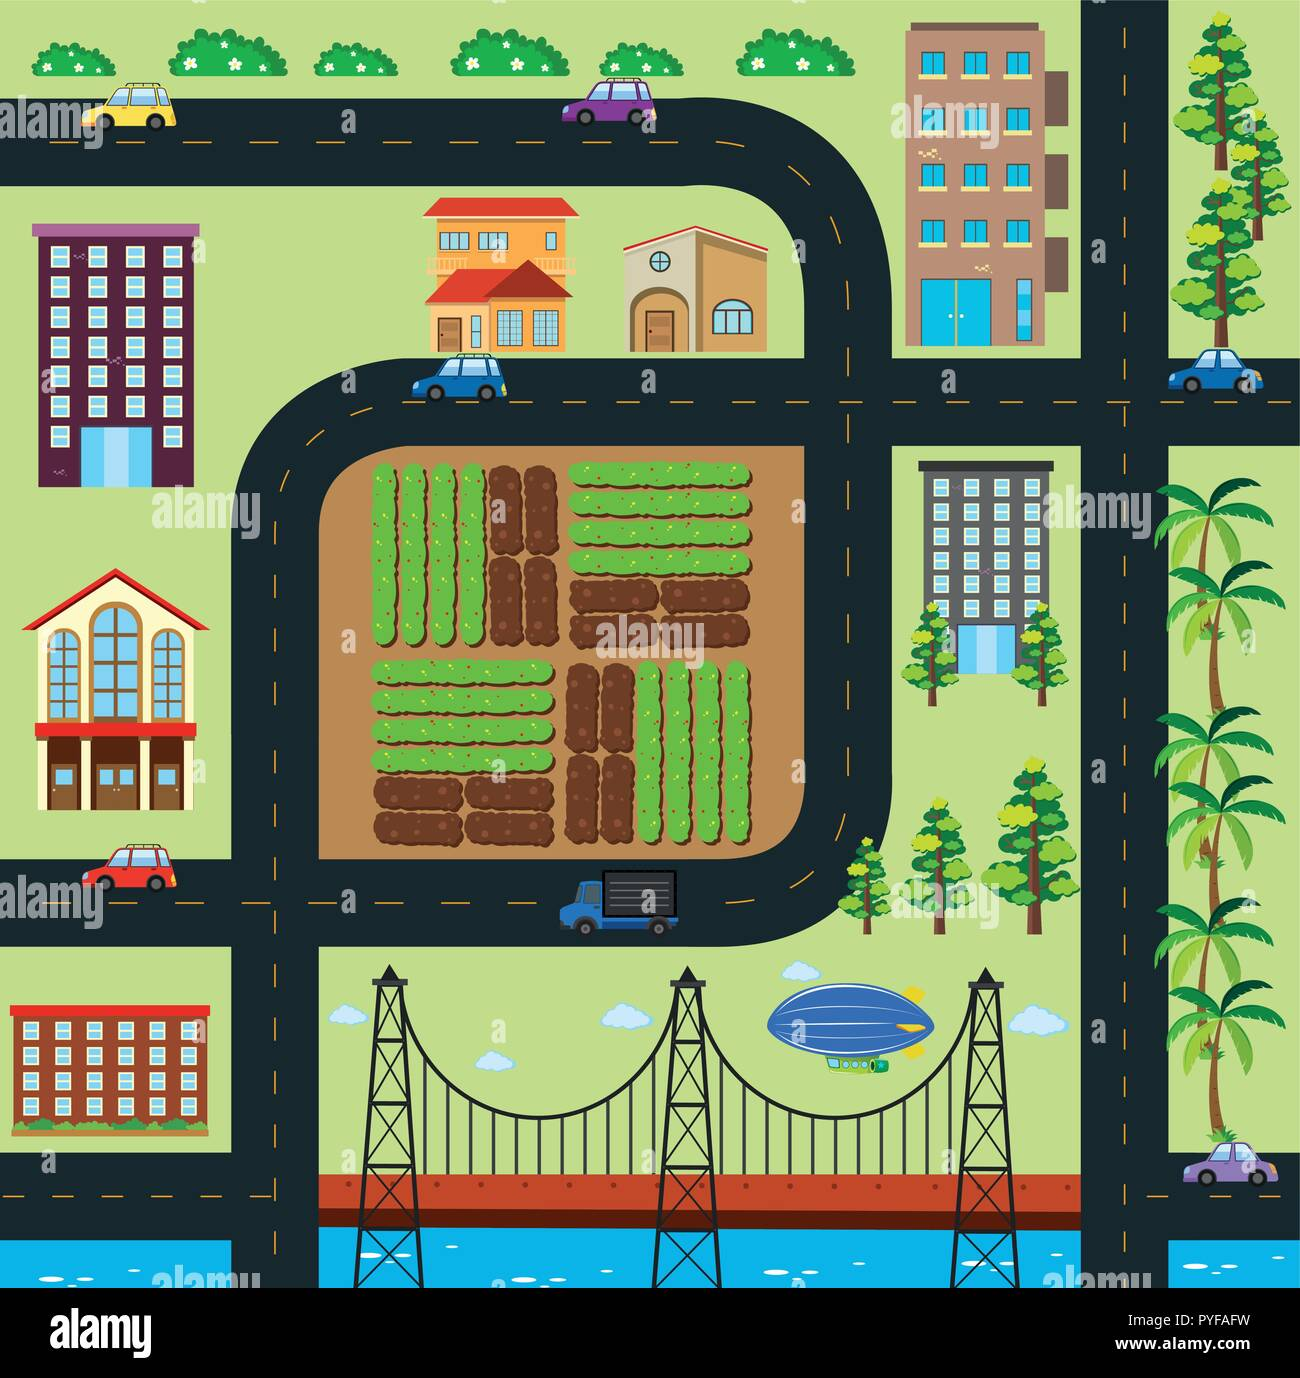 Map of town with roads and buildings illustration Stock Vector Art Illustration Map Town on map print, map of louisiana and mississippi, map of spanish speaking world, map clipart, map making, map art, map of the south sewanee university, map infographic, map background, map design, map great britain, map of california and mexico, map key, map paper, map cartoon, map of belfast and surrounding areas, map of victoria, map books, map app, map travel,